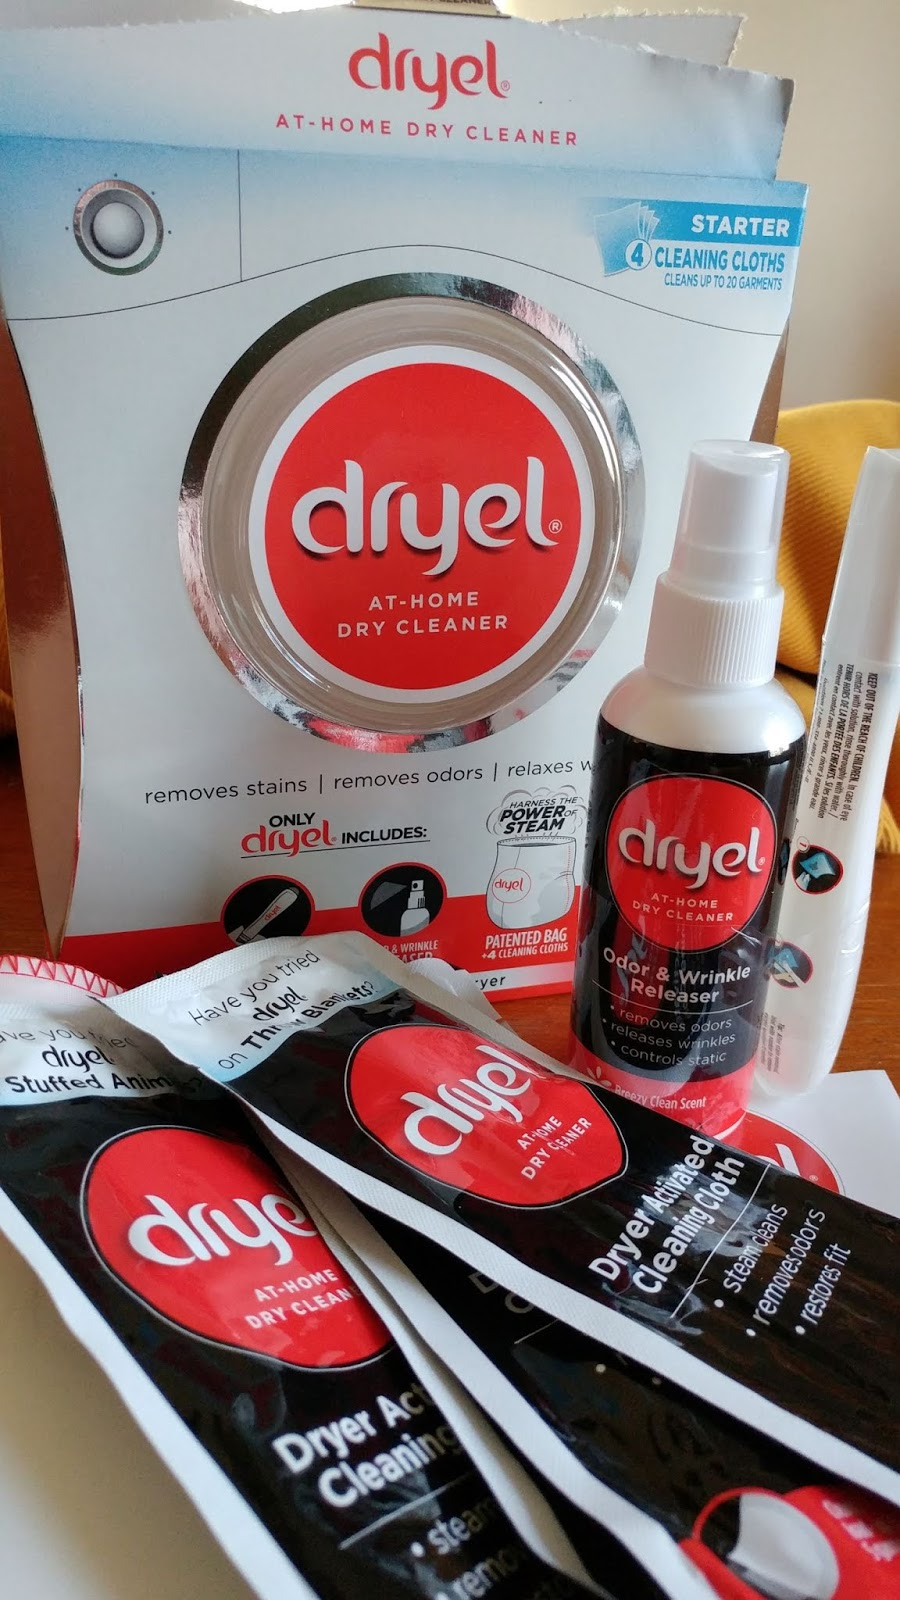 Save time & money by dry cleaning fabrics at home with Dryel #ad